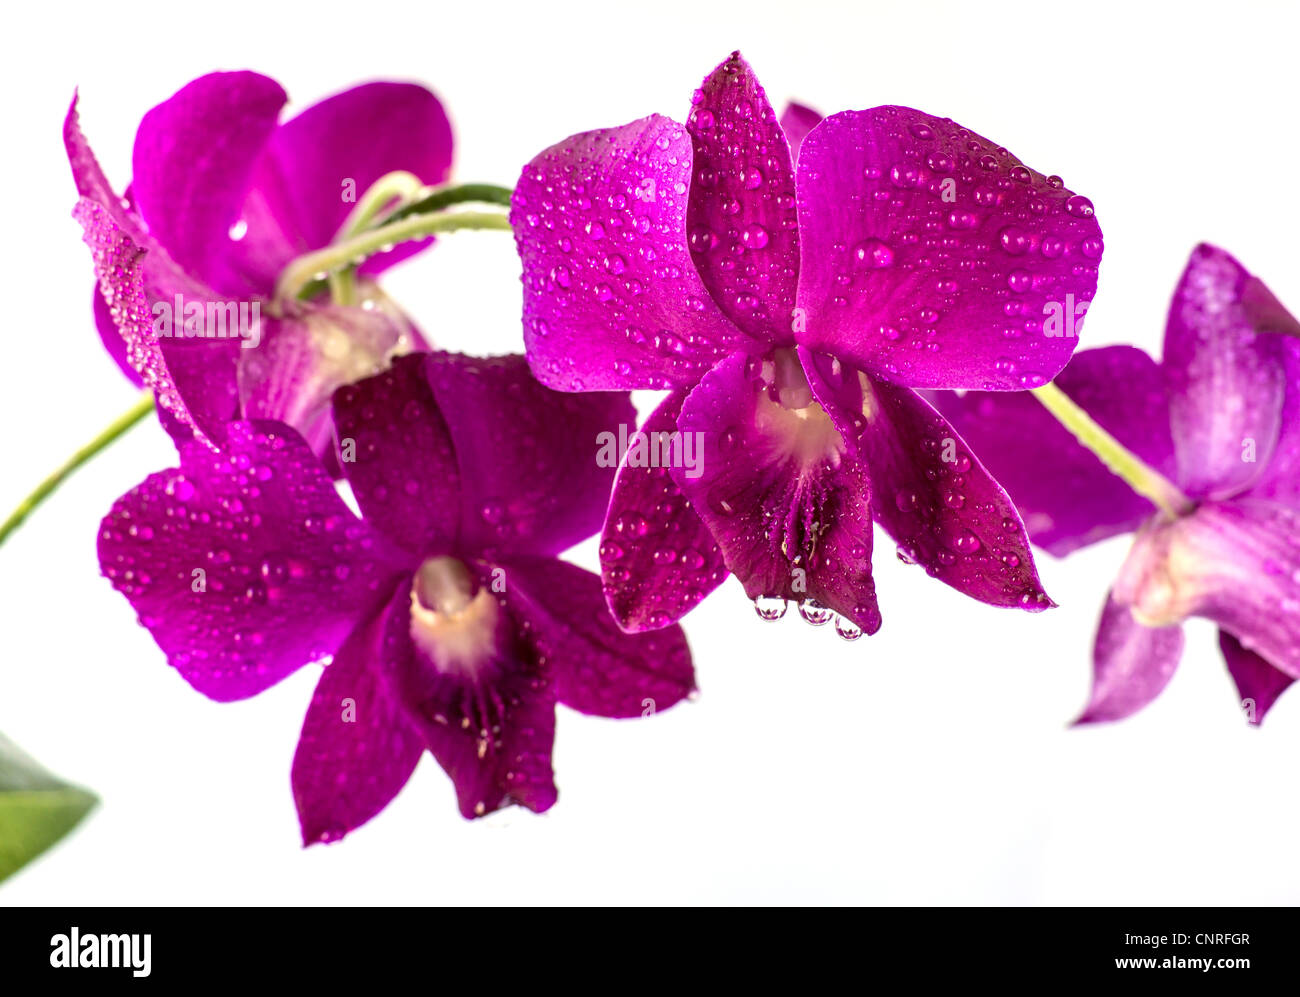 rote dendrobium orchidee in studioumgebung erschossen stockfoto bild 47845639 alamy. Black Bedroom Furniture Sets. Home Design Ideas